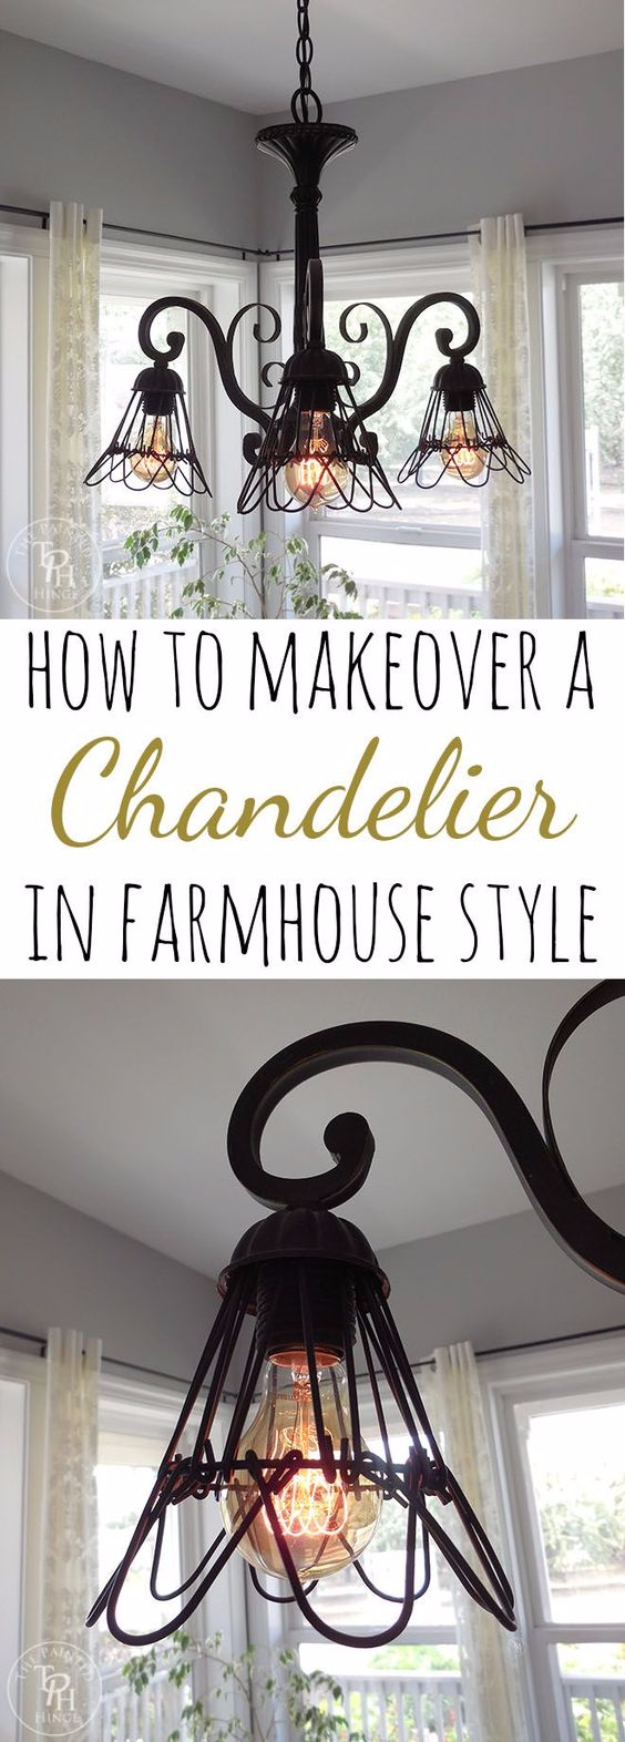 DIY Farmhouse Style Decor Ideas for the Bedroom - Farmhouse Style Chandelier - Rustic Farm House Ideas for Furniture, Paint Colors, Farm House Decoration for Home Decor in The Bedroom - Wall Art, Rugs, Nightstands, Lights and Room Accessories http://diyjoy.com/diy-farmhouse-decor-bedroom